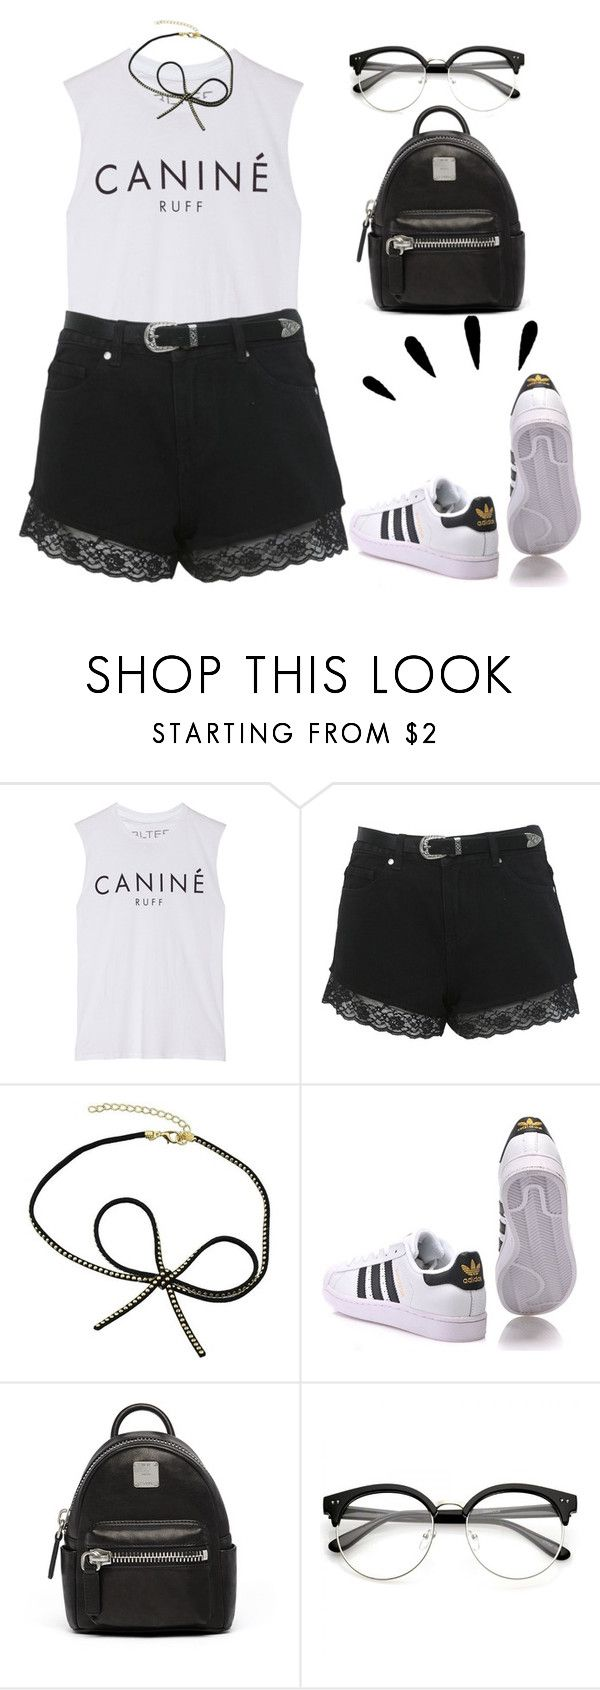 """#backtoschool"" by sarabutterfly ❤ liked on Polyvore featuring Brian Lichtenberg, Miss Selfridge, Old Navy, adidas Originals, MCM and BackToSchool"